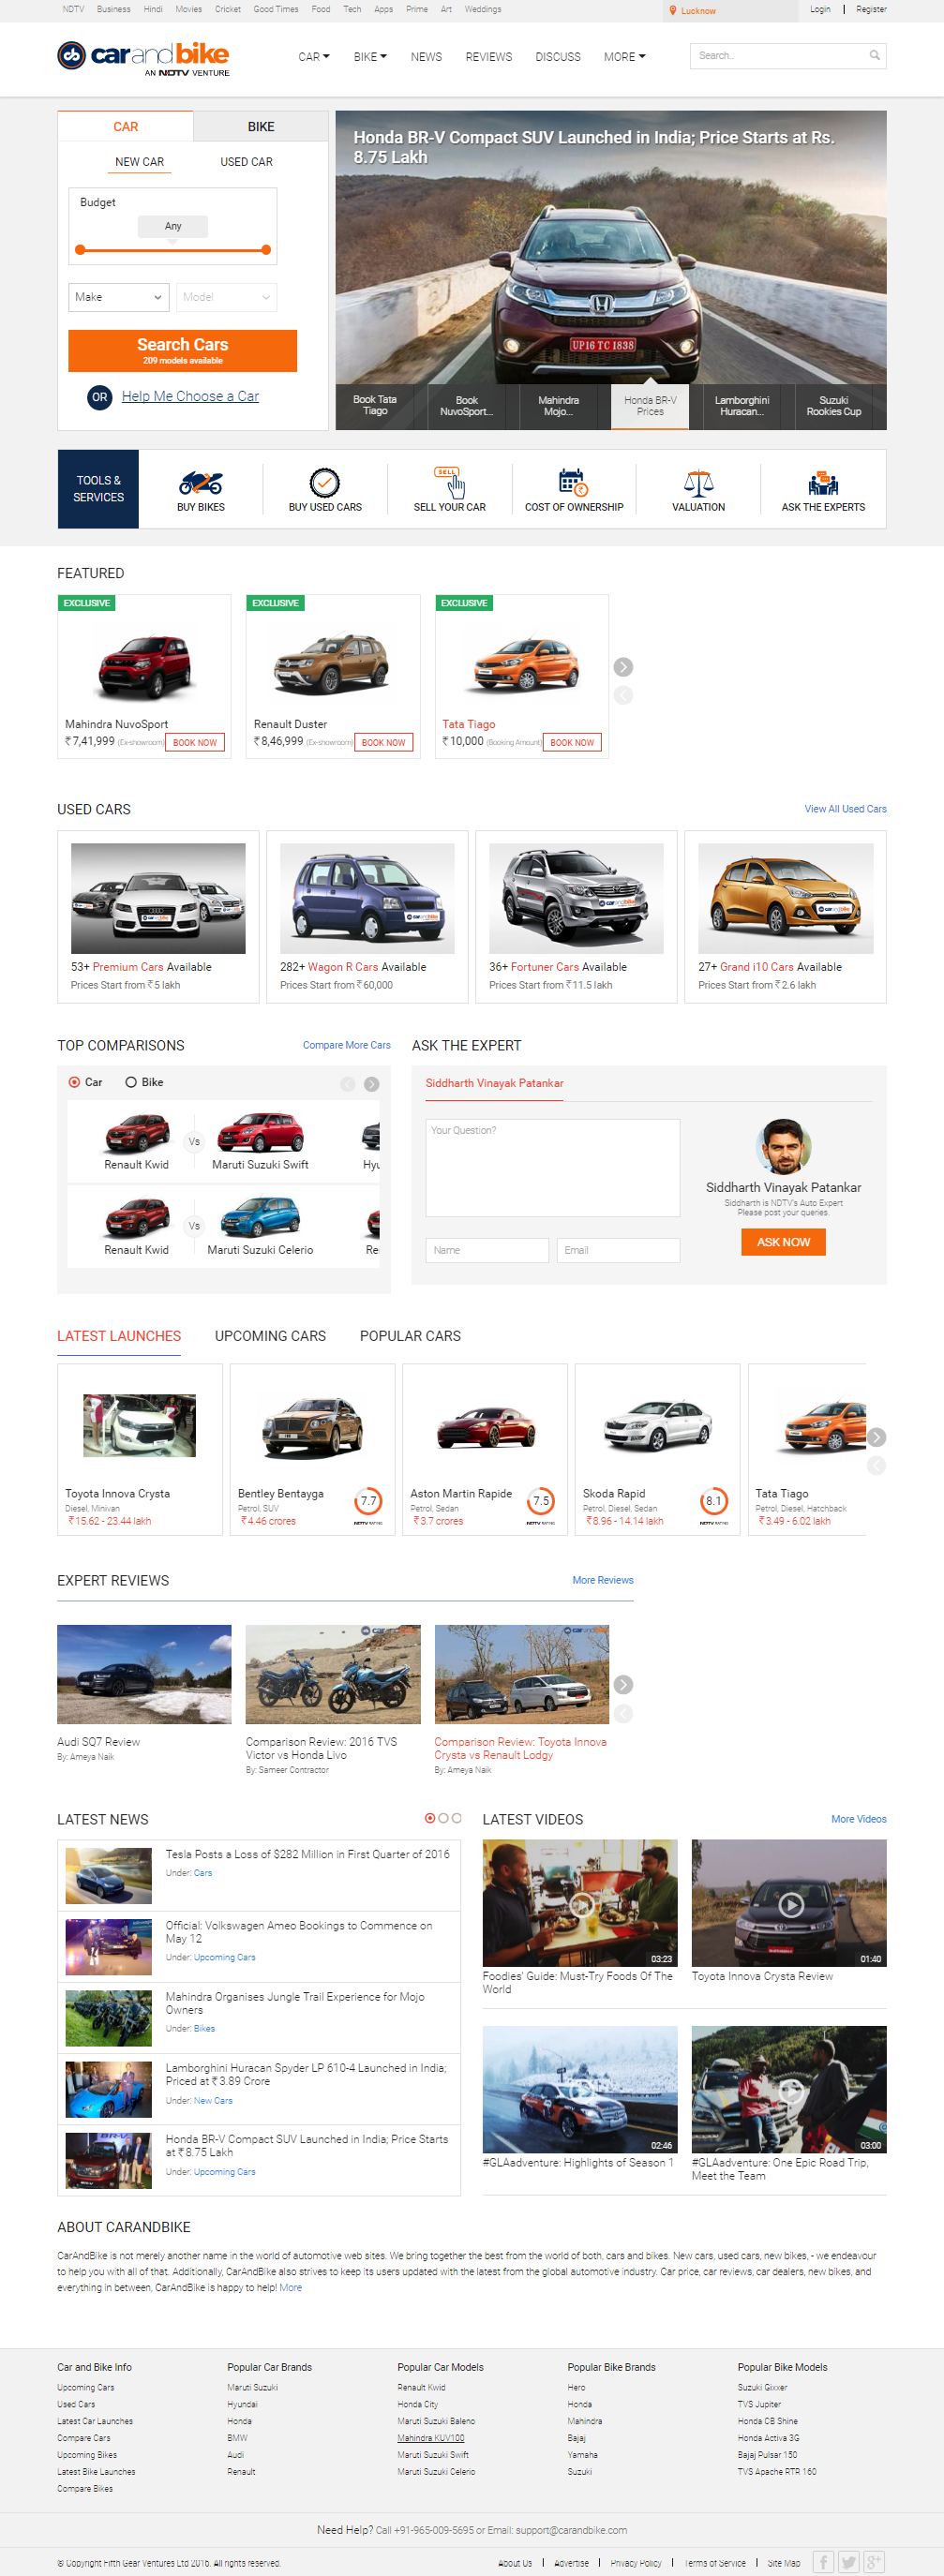 Magento Ecommerce Marketplace for Automobiles